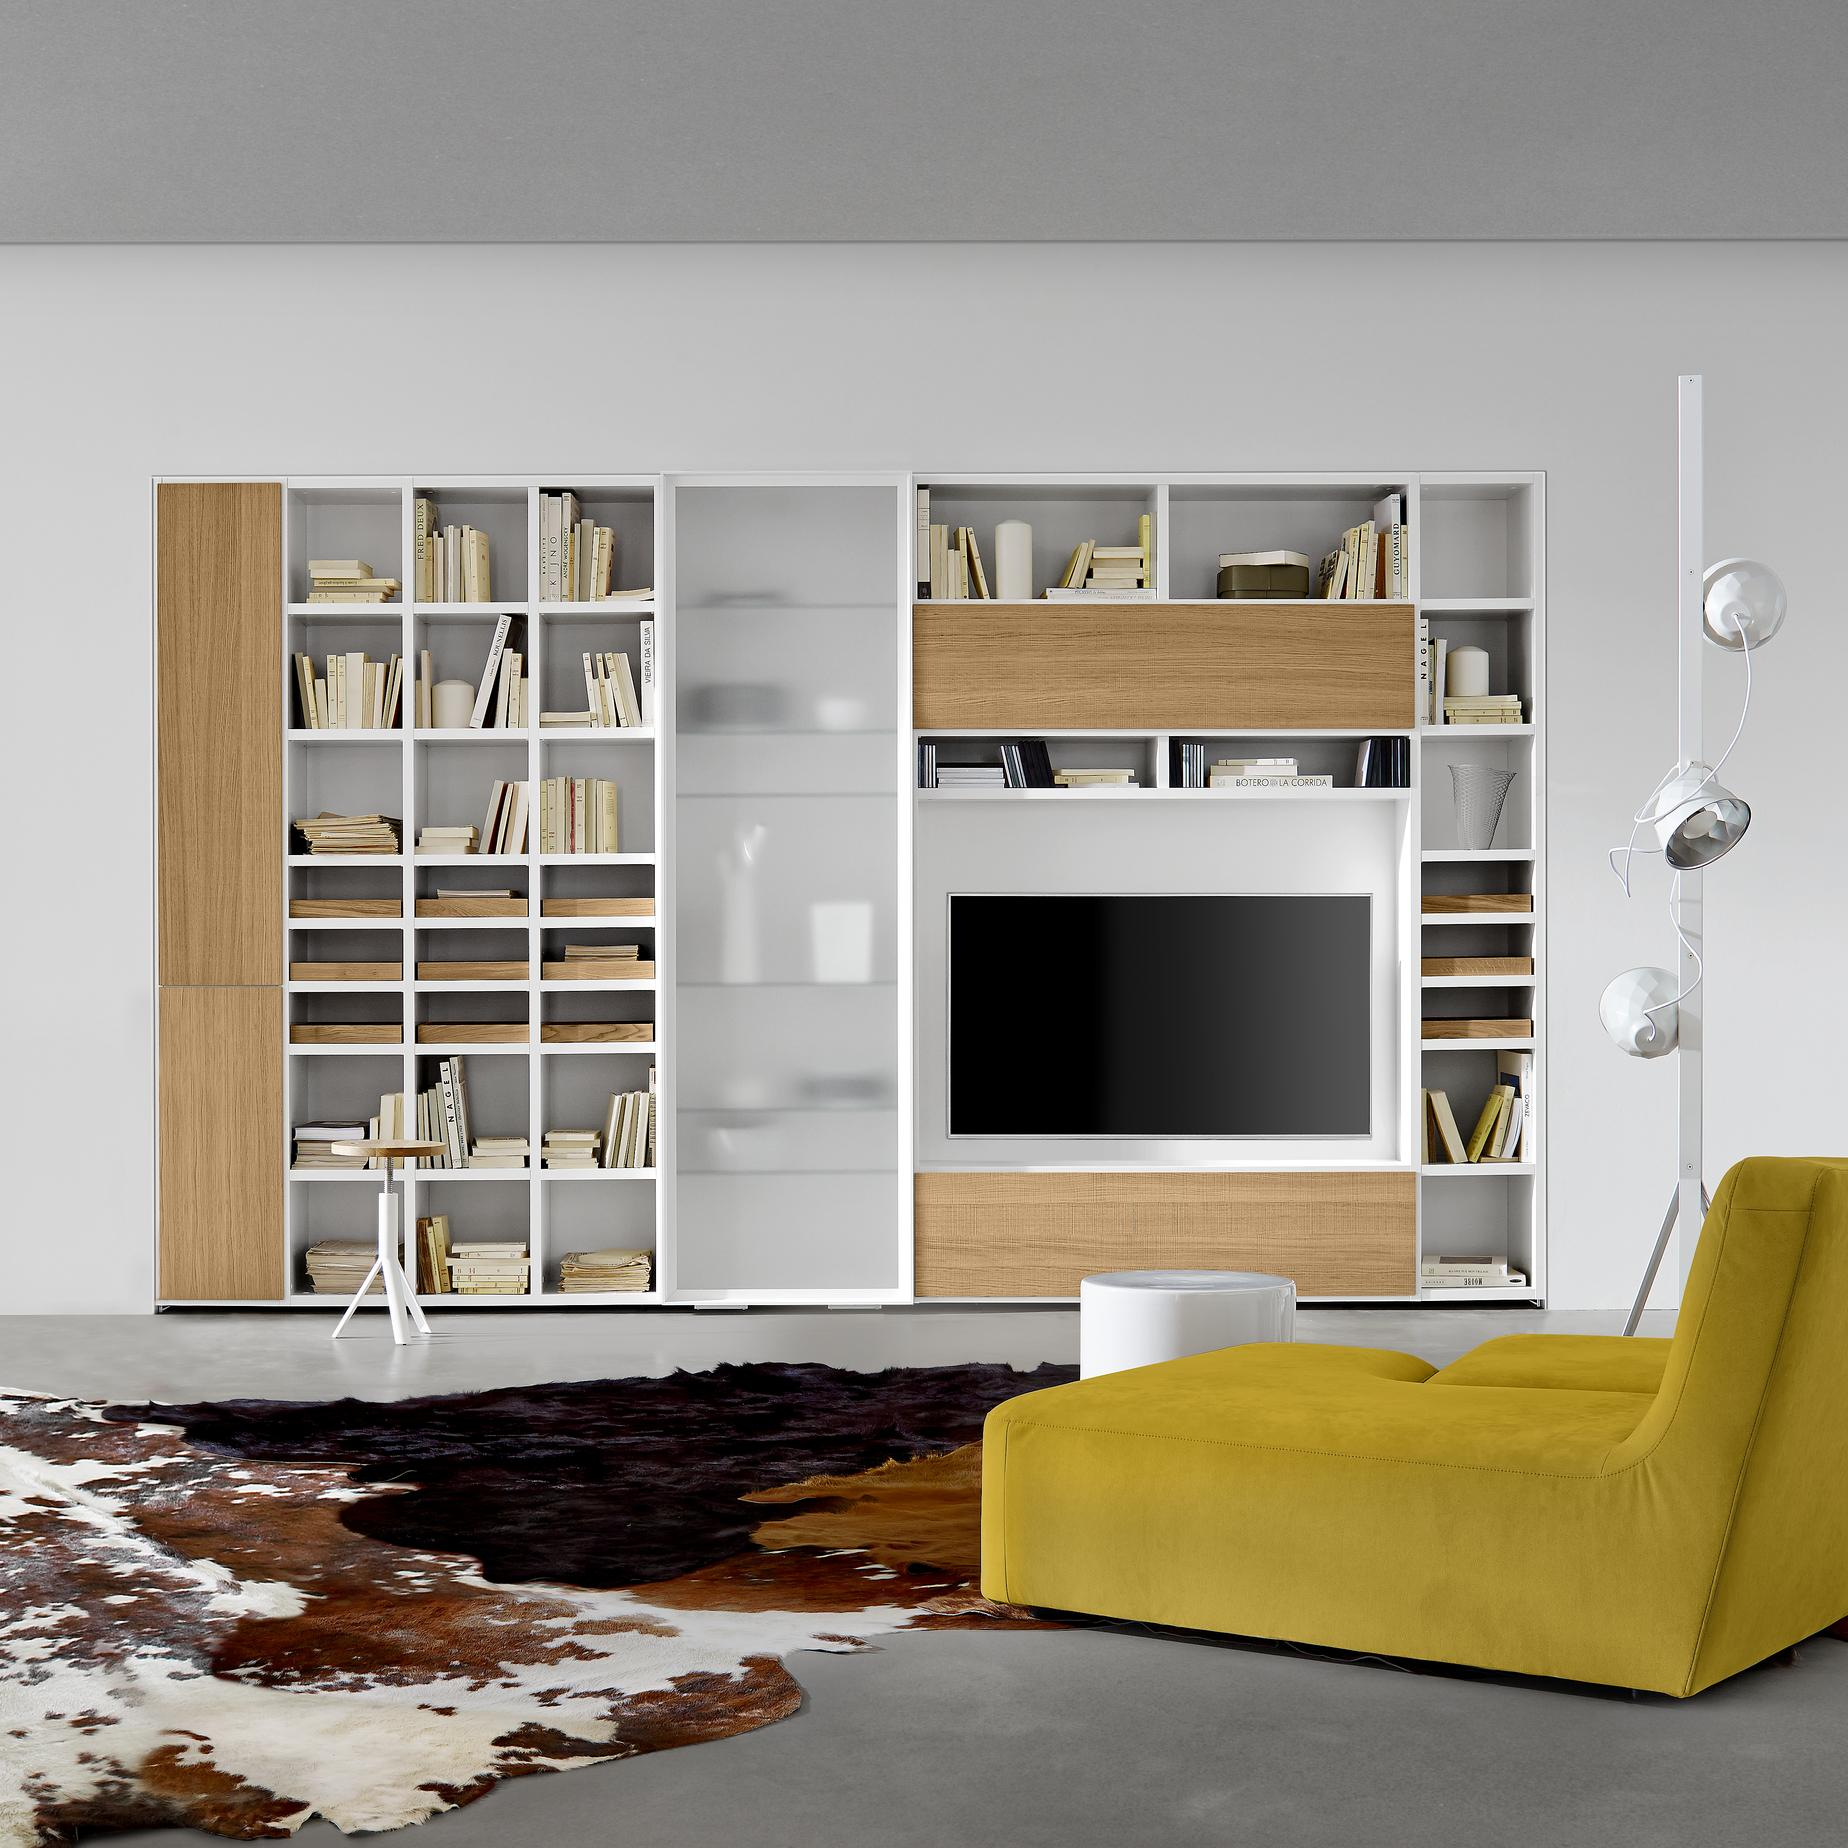 ET CETERA Ligne Roset